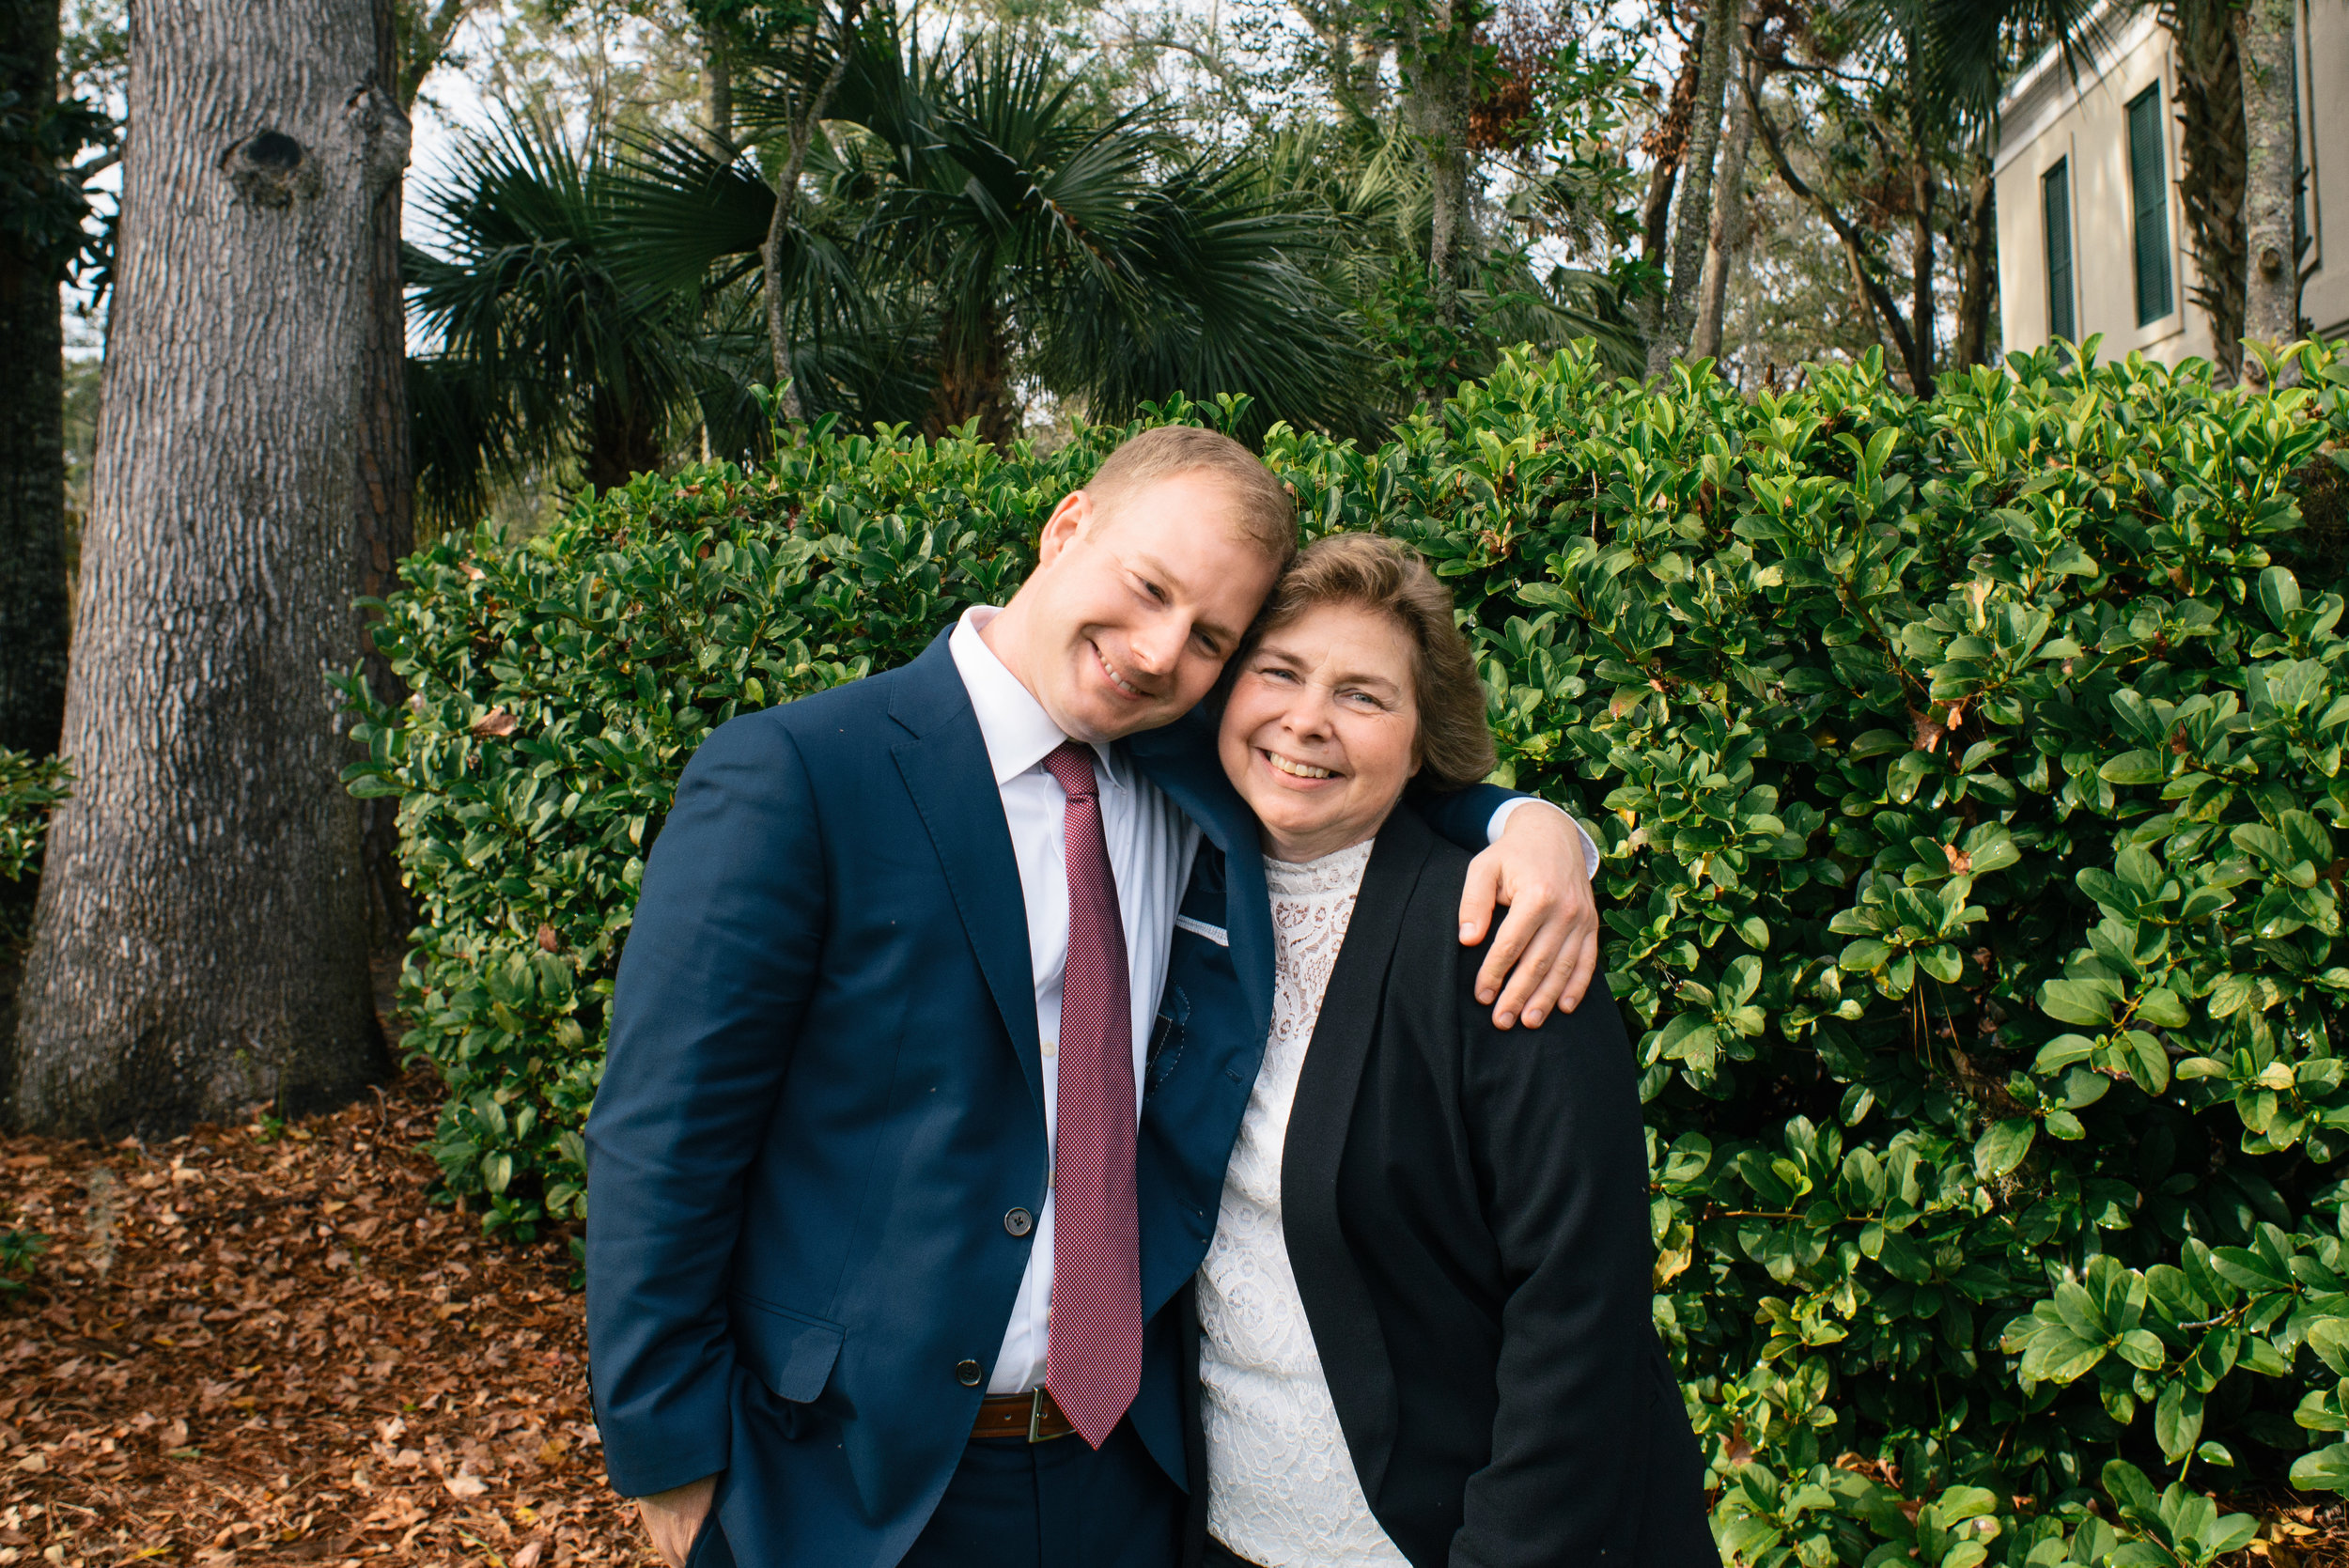 emily-and-david-daufuskie-island-wedding-december-wedding-meg-hill-photo- (38 of 728).jpg